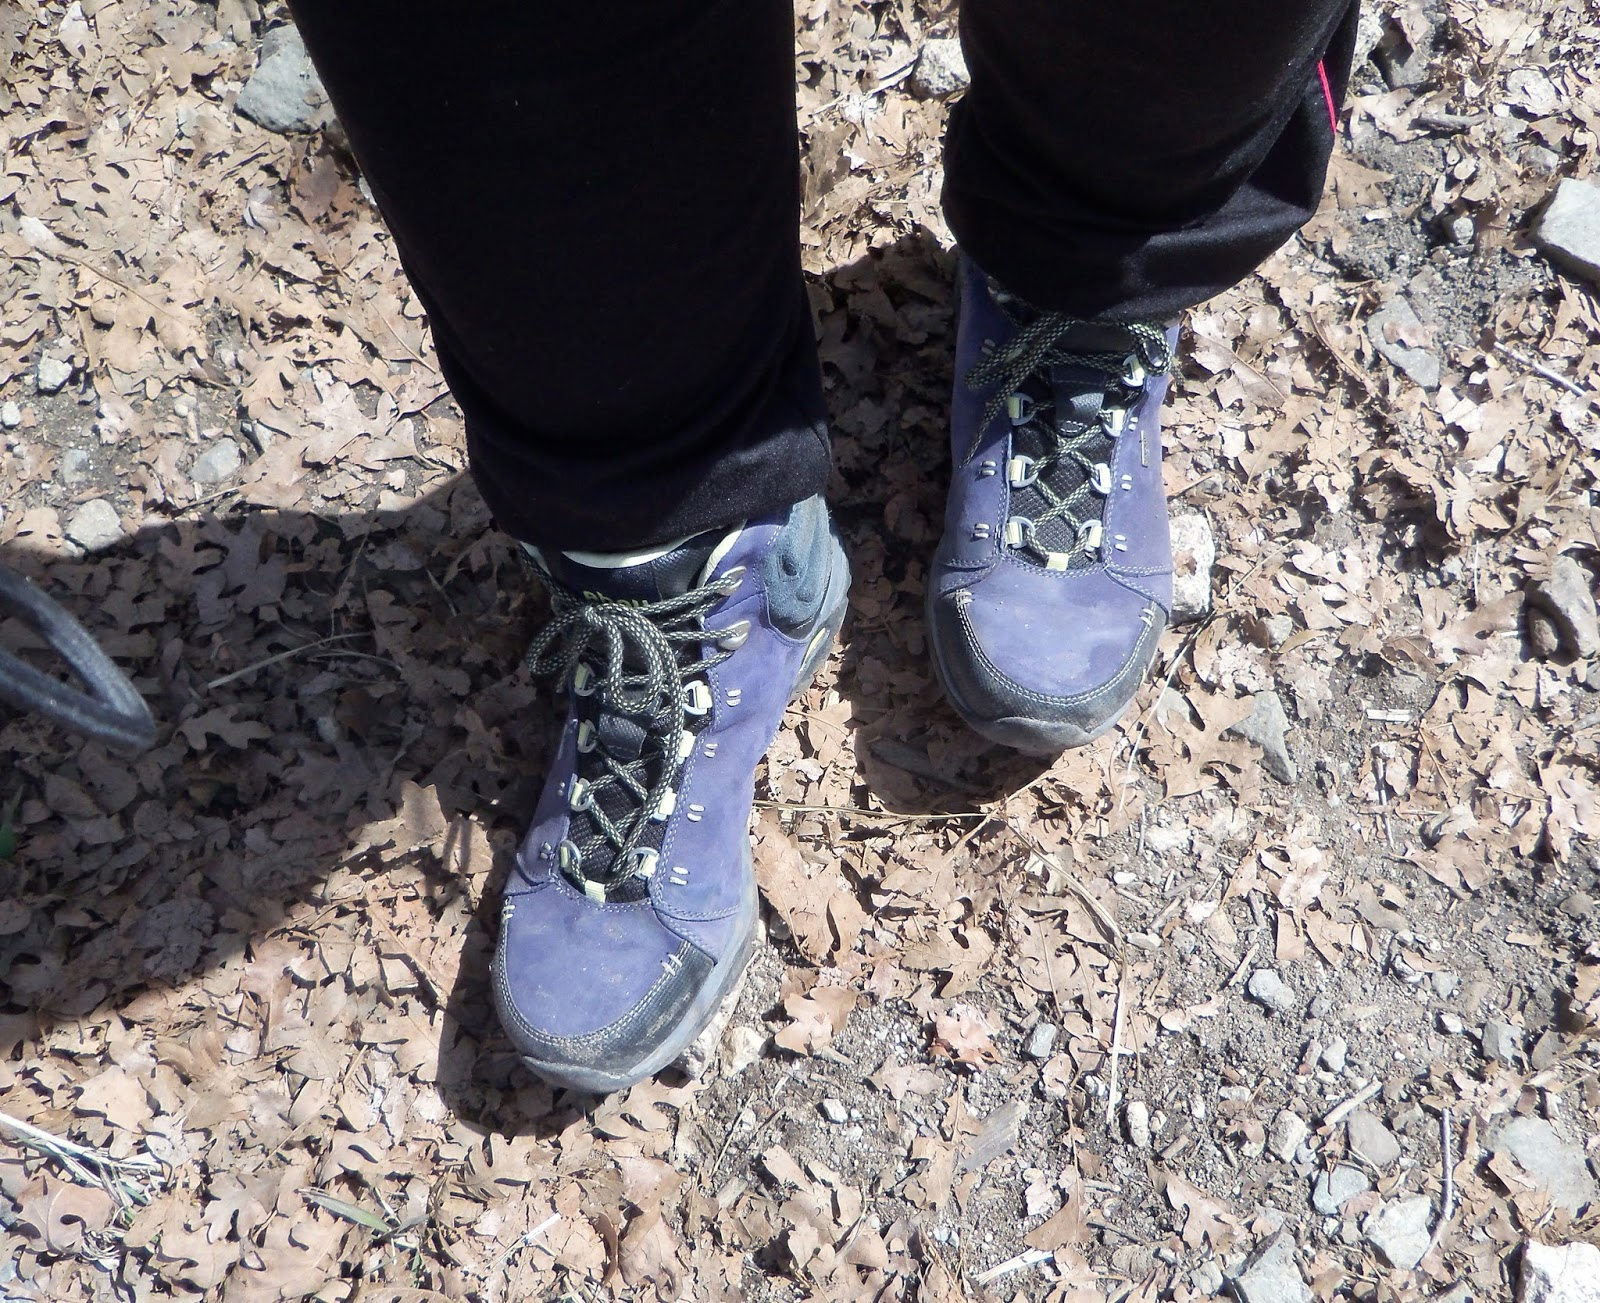 53e6dea019f Review: Montara Women's Hiking Boots